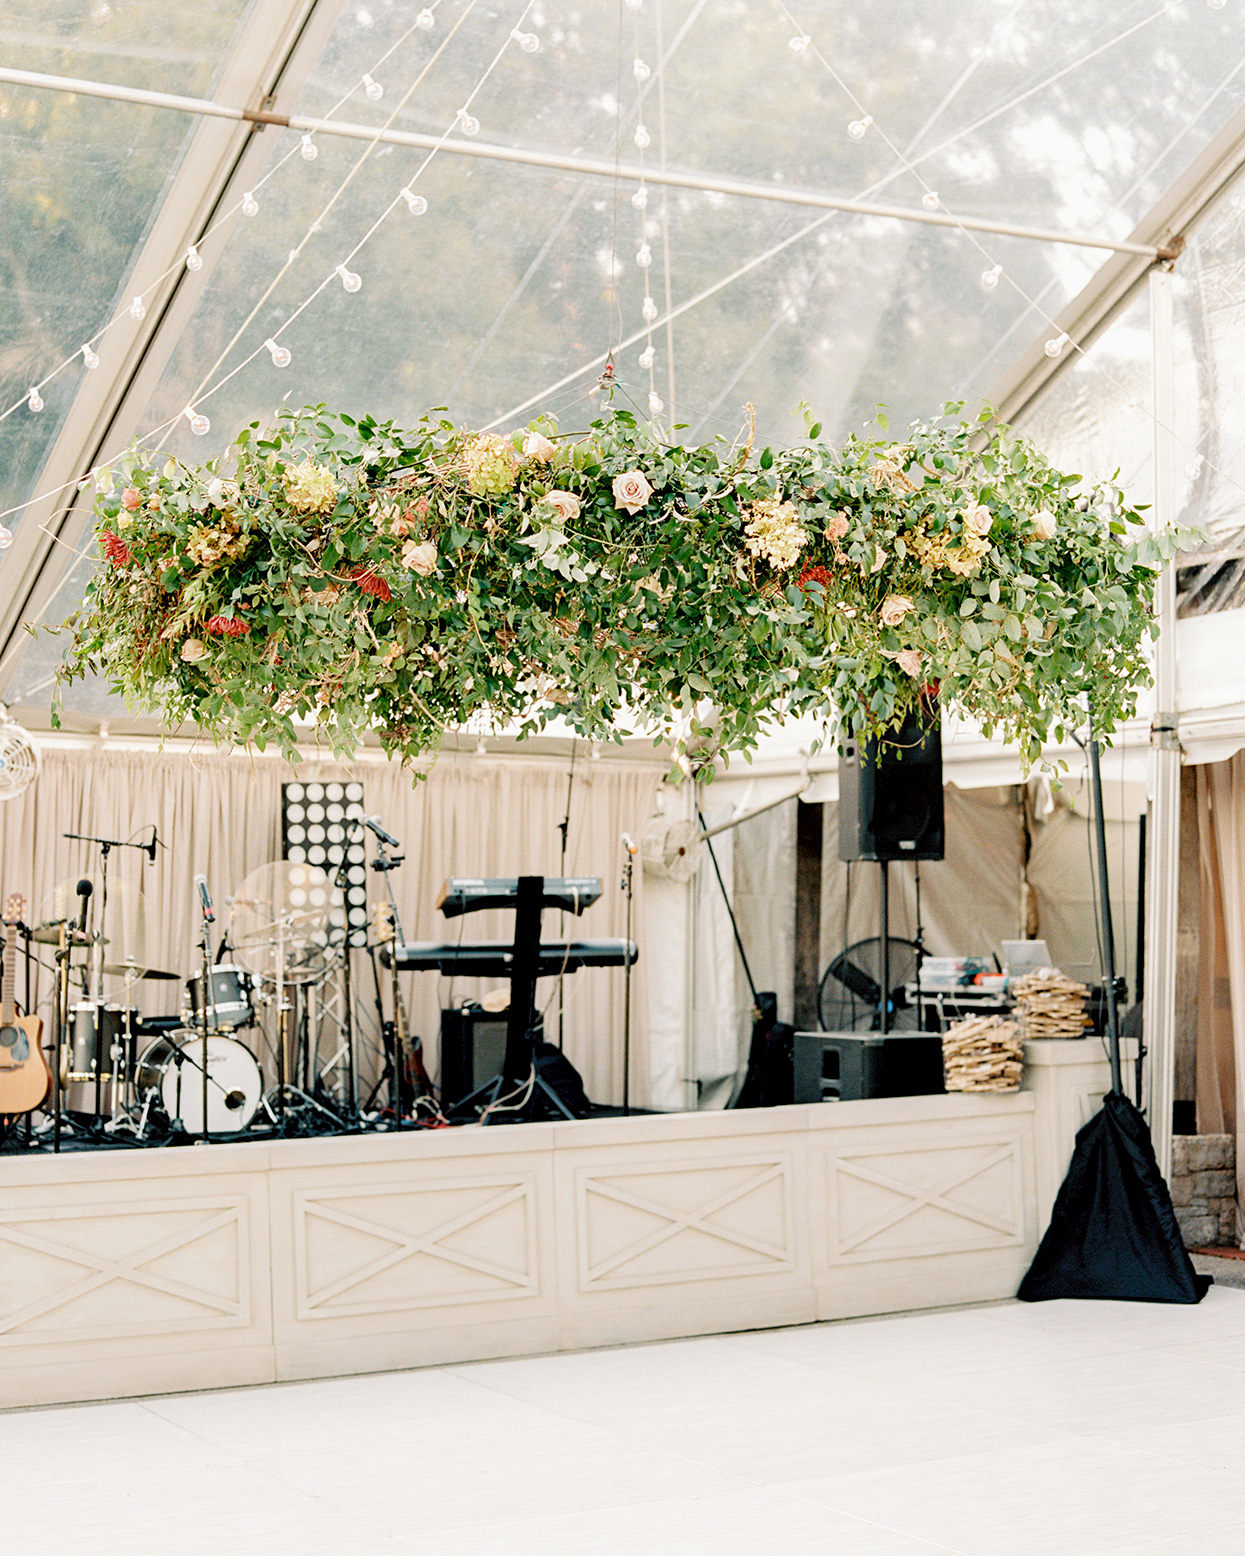 Claire and Dan's reception tent greenery installation above dance floor